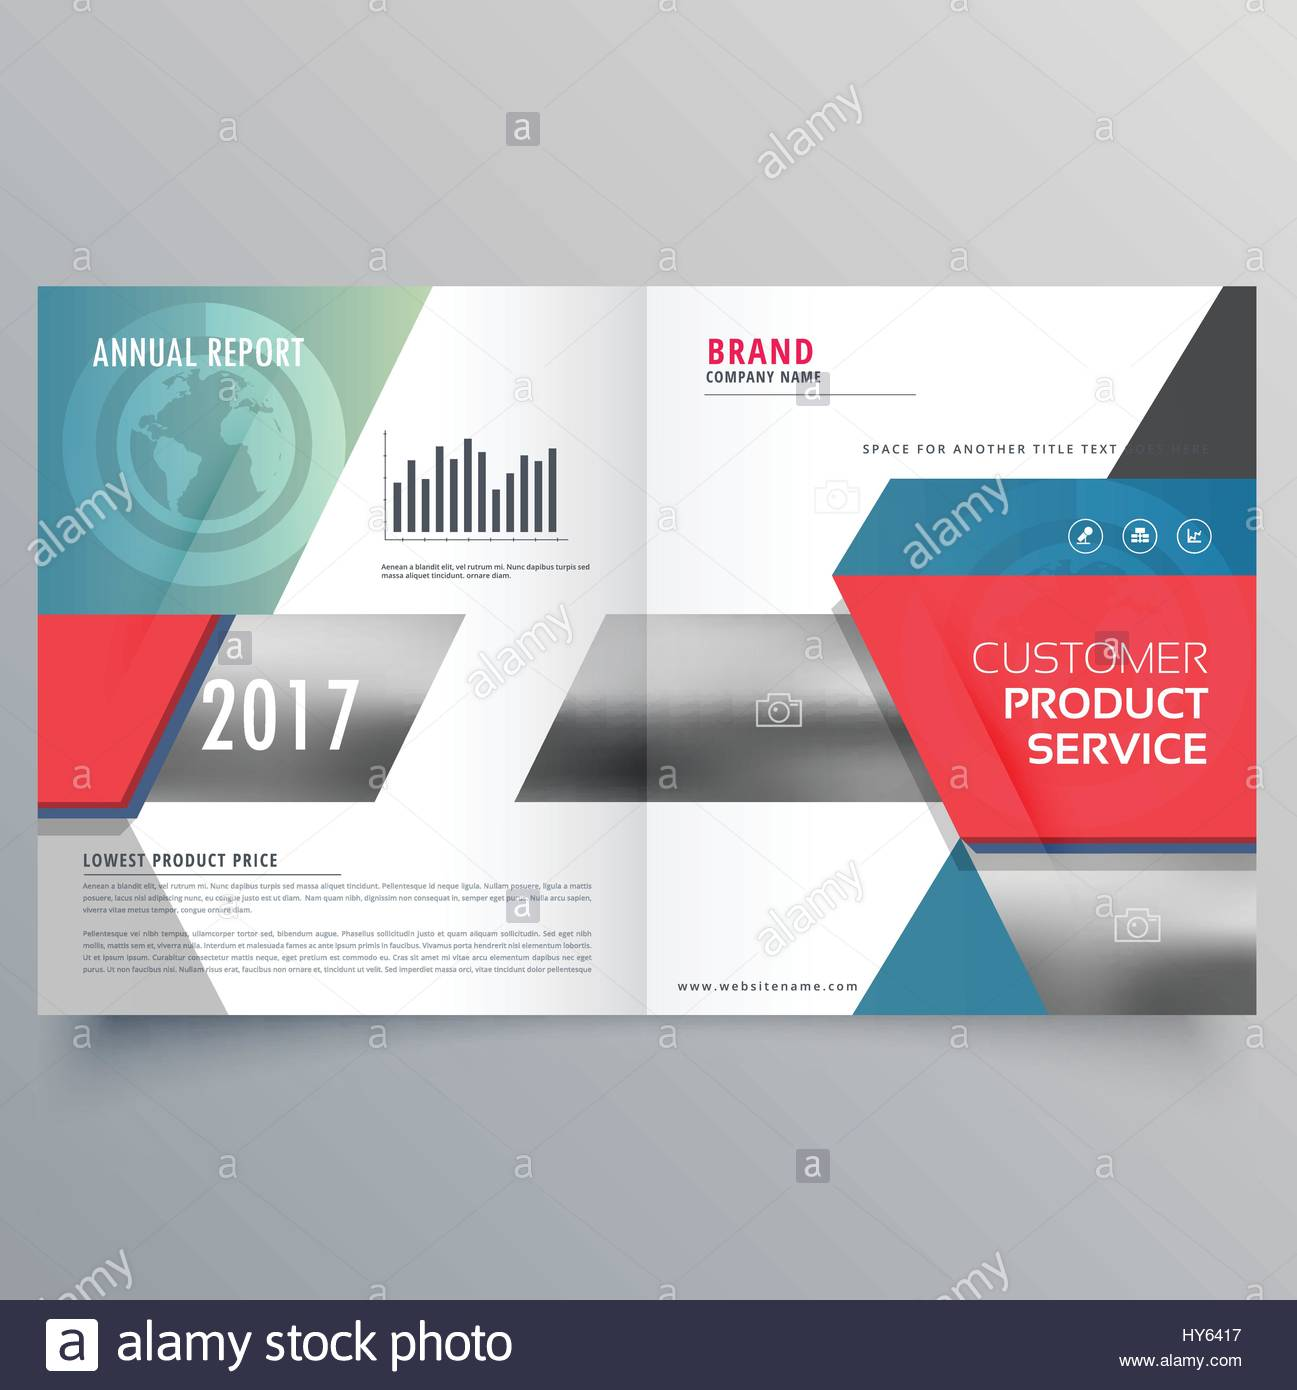 Modern creative business magazine cover or bifold brochure template modern creative business magazine cover or bifold brochure template design cheaphphosting Images